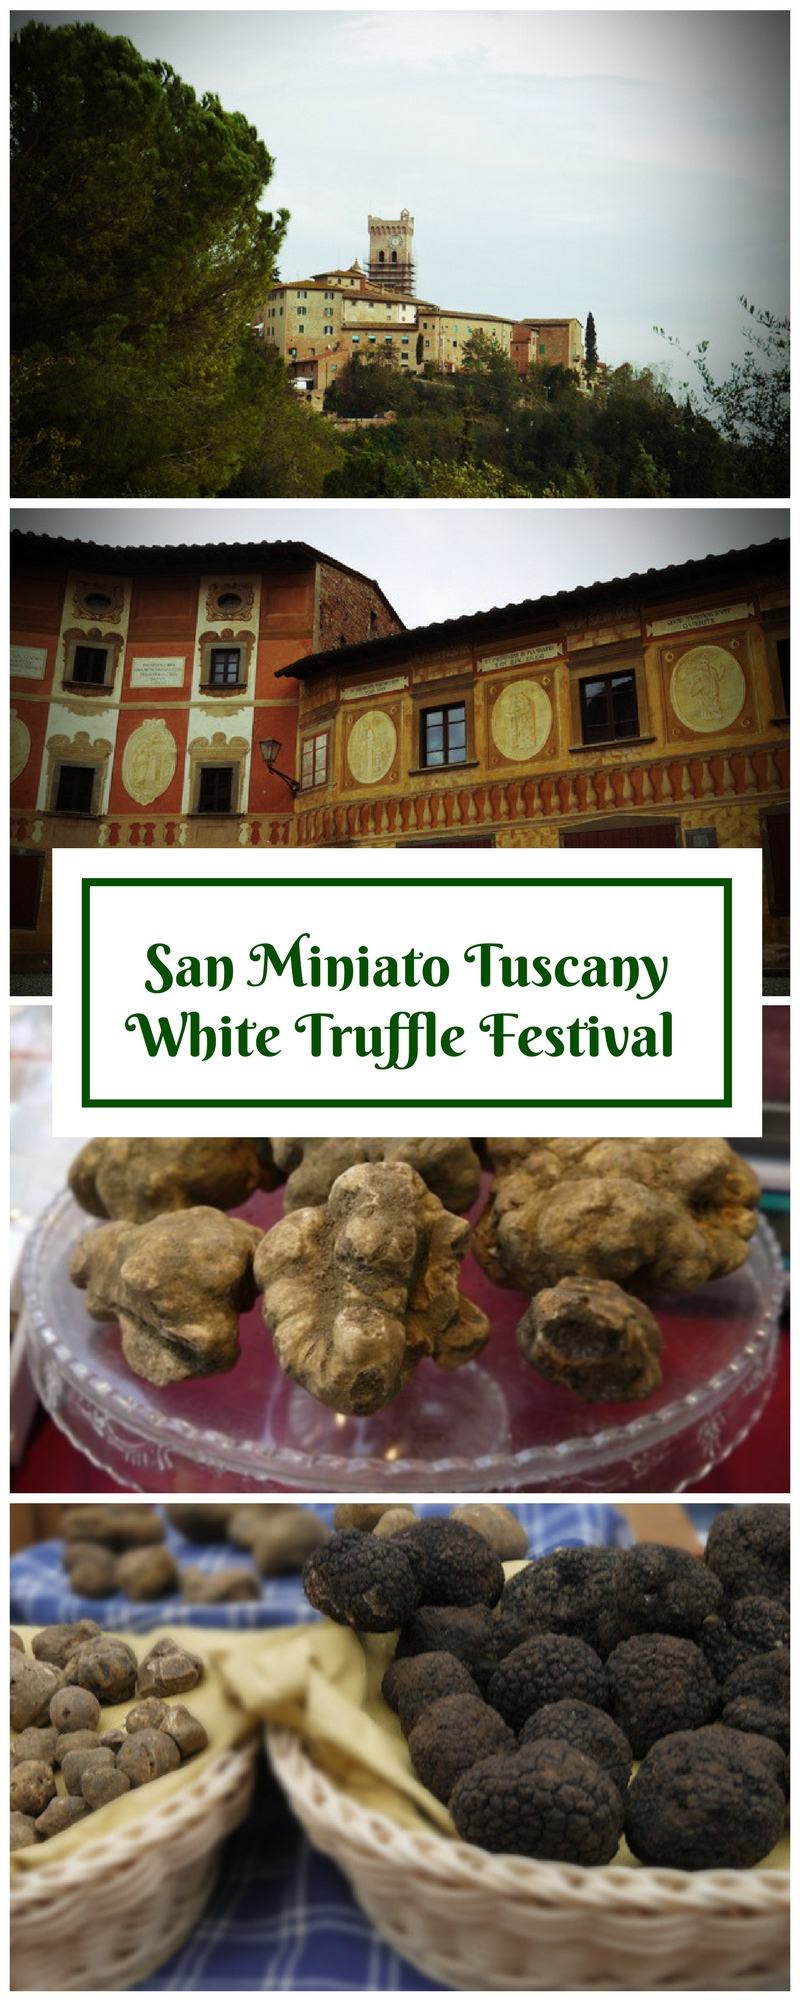 San Miniato White Truffle Festival - an Annual Celebration of the Truffle at San Miniato, Tuscany, Italy